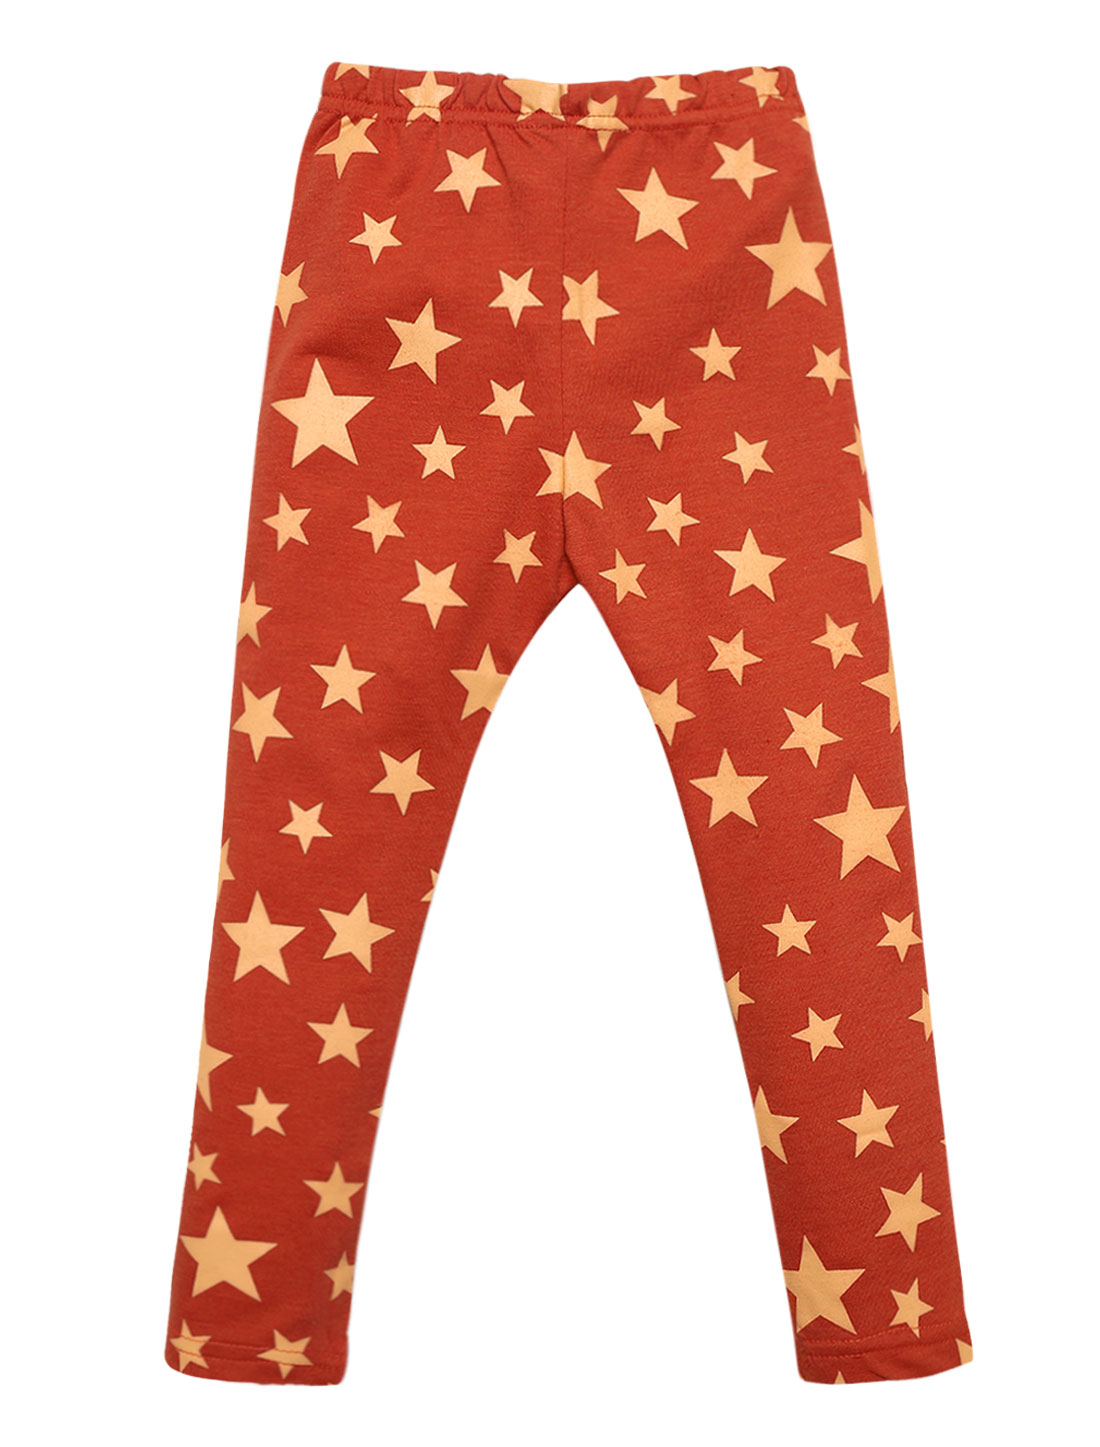 Girls Stars Pattern Mid Rise Stretchy Casual Leggings Orange Red 3T